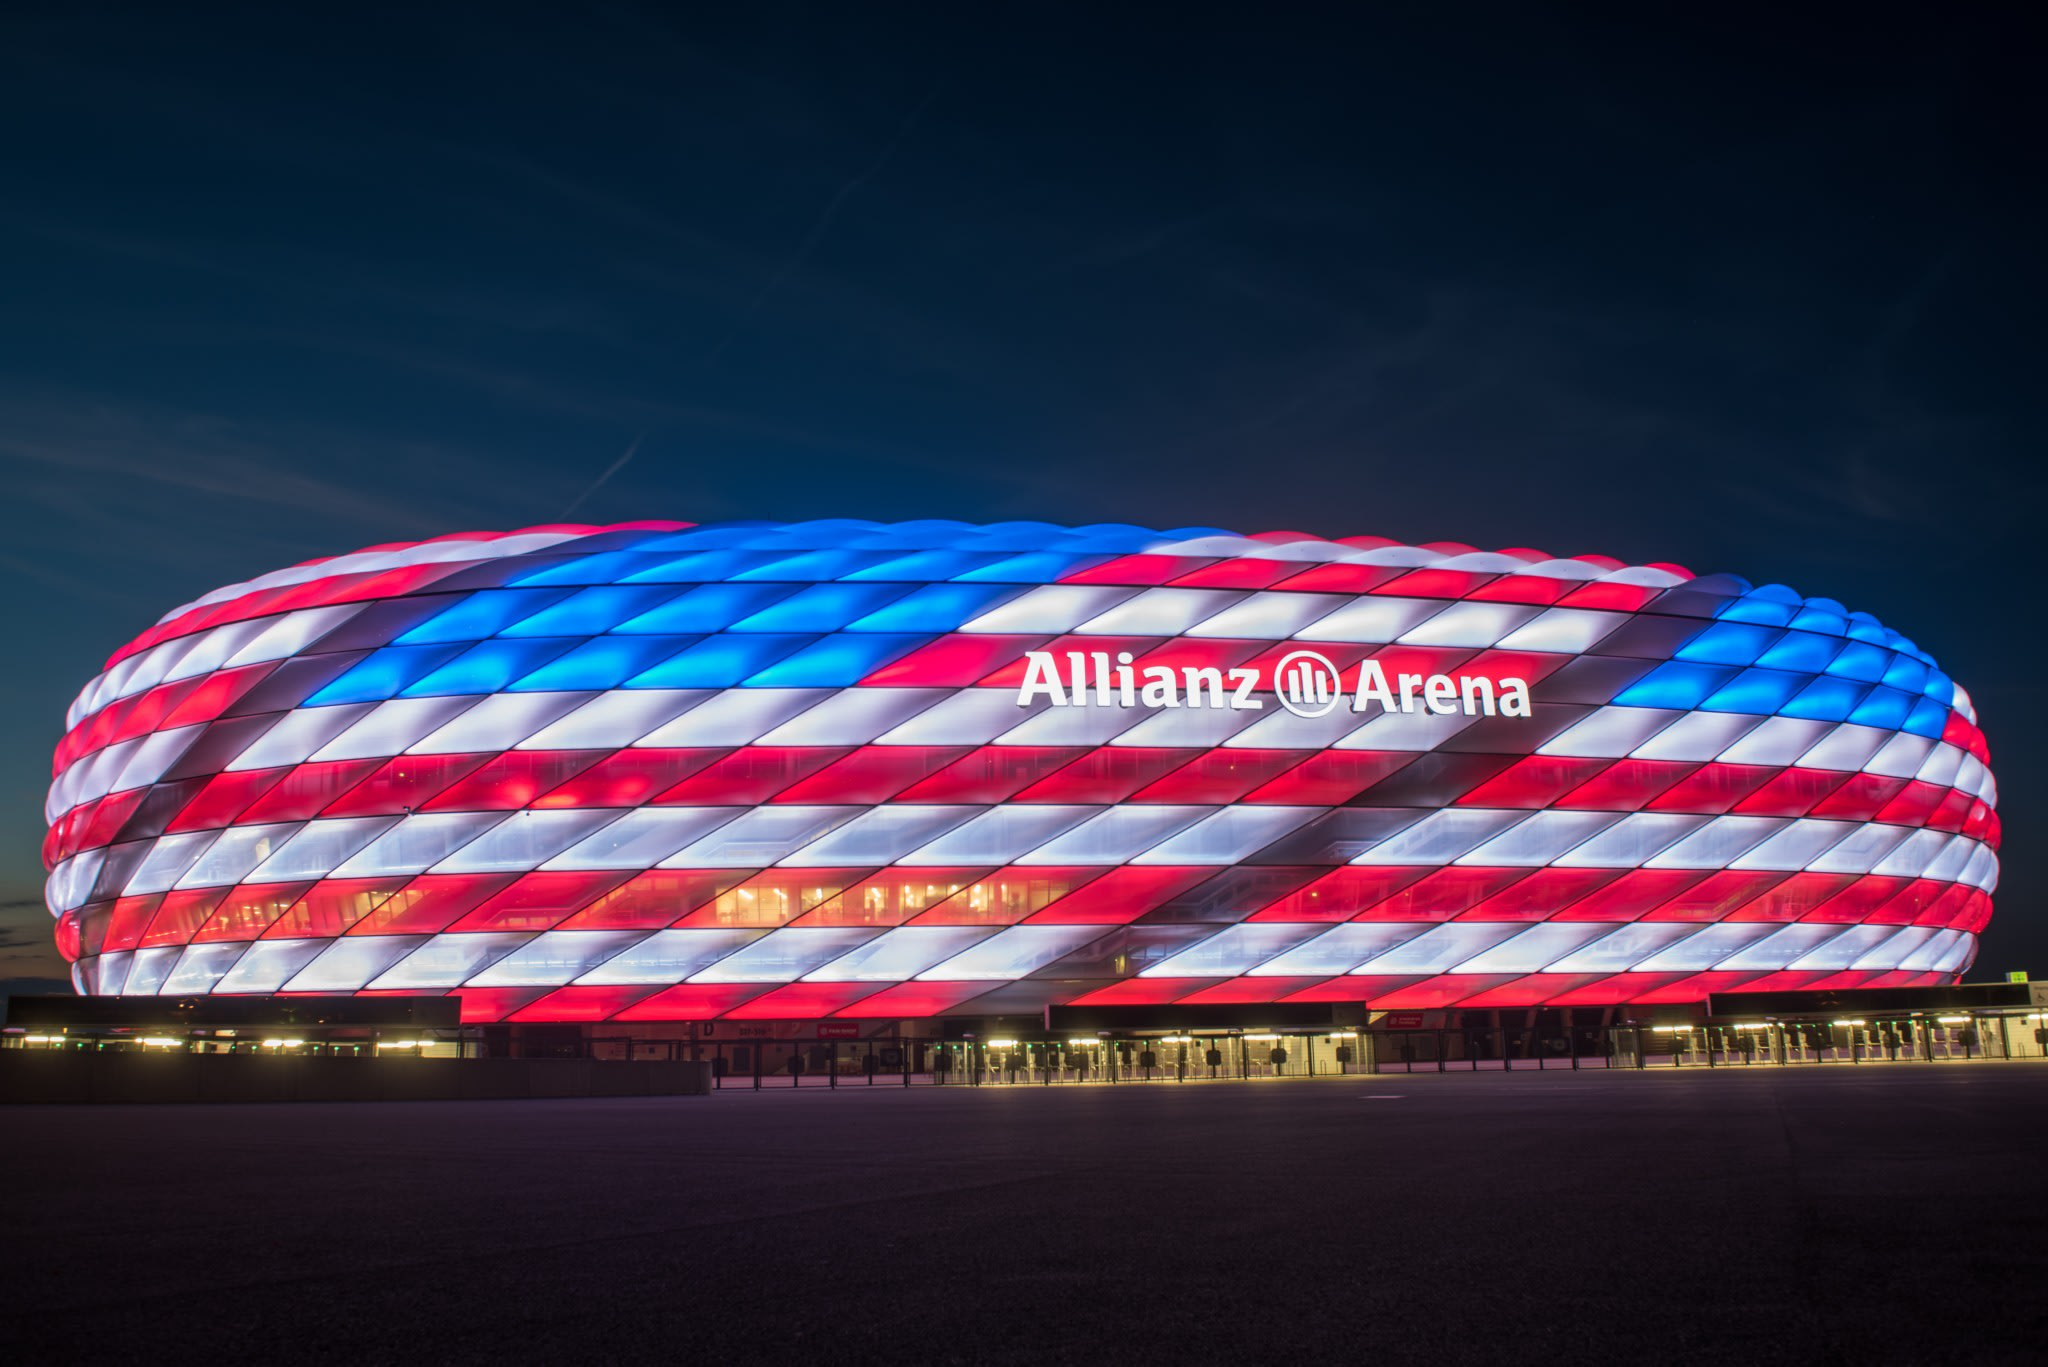 Bayern Munich celebrated the Fourth of July in a very special way